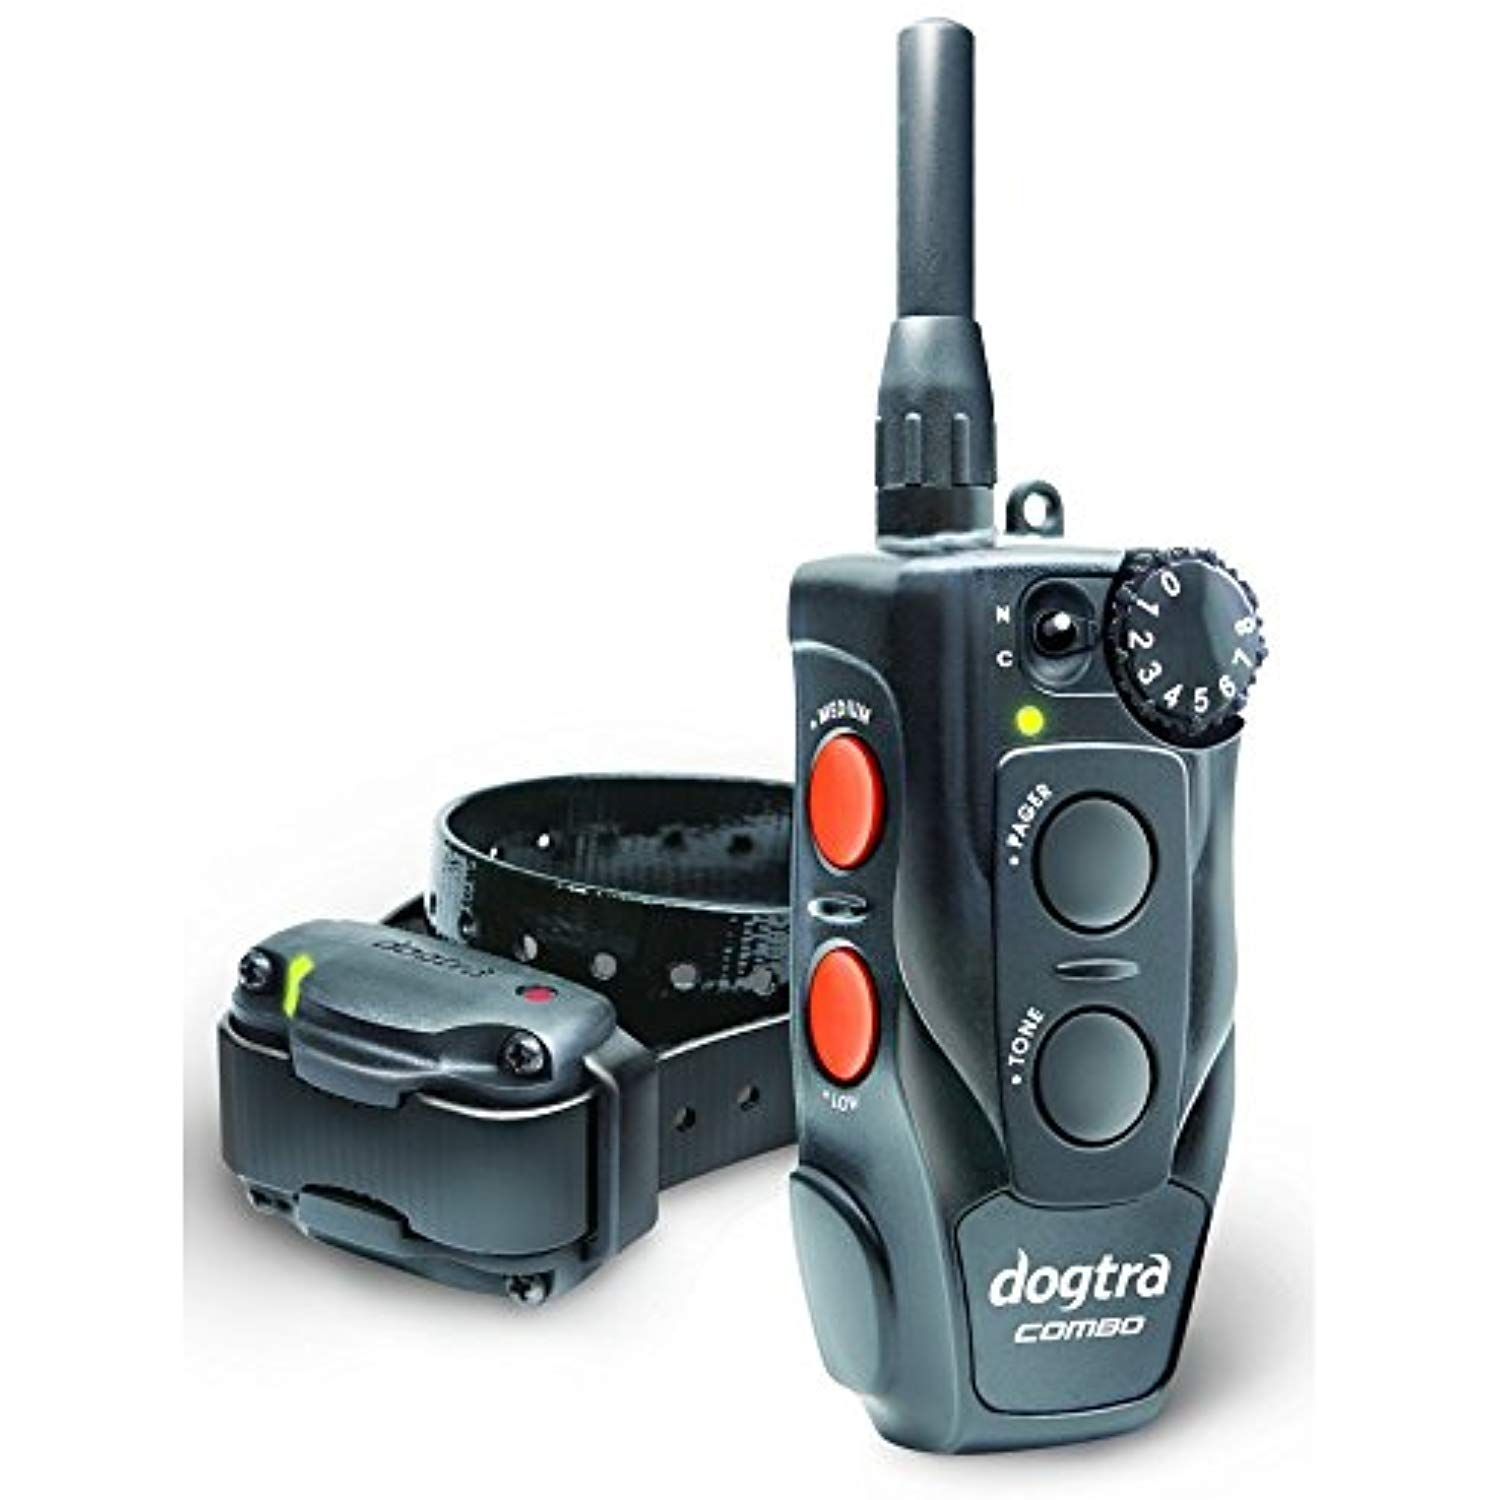 Dogtra Combo Remote Dog Training Collar 1 2 Mile Range You Can